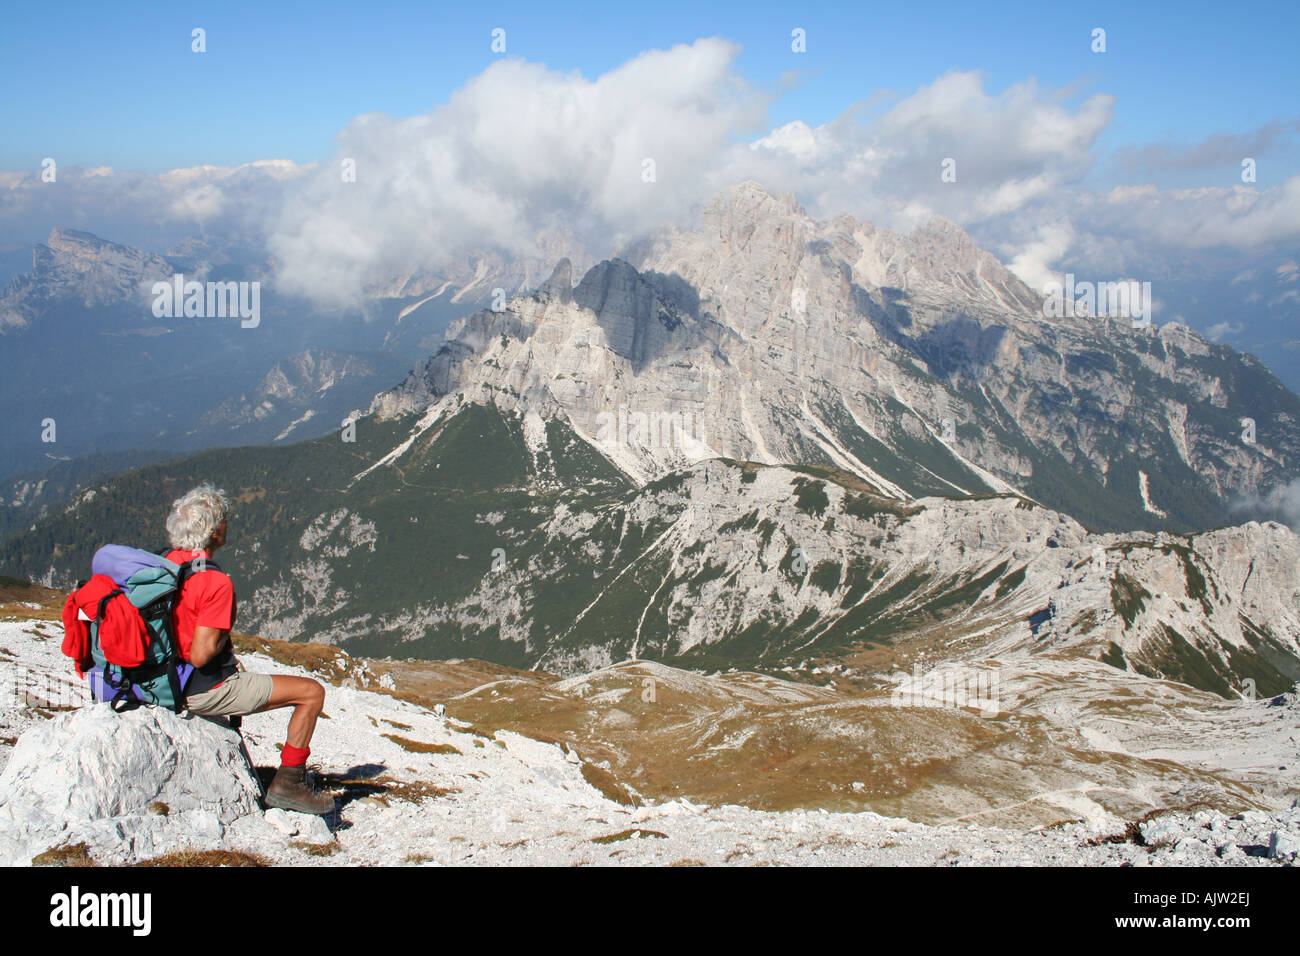 Walker on the Alta Via 1 enjoying the stunning views in the Dolomiti Bellunies, Veneto, Italy - Stock Image